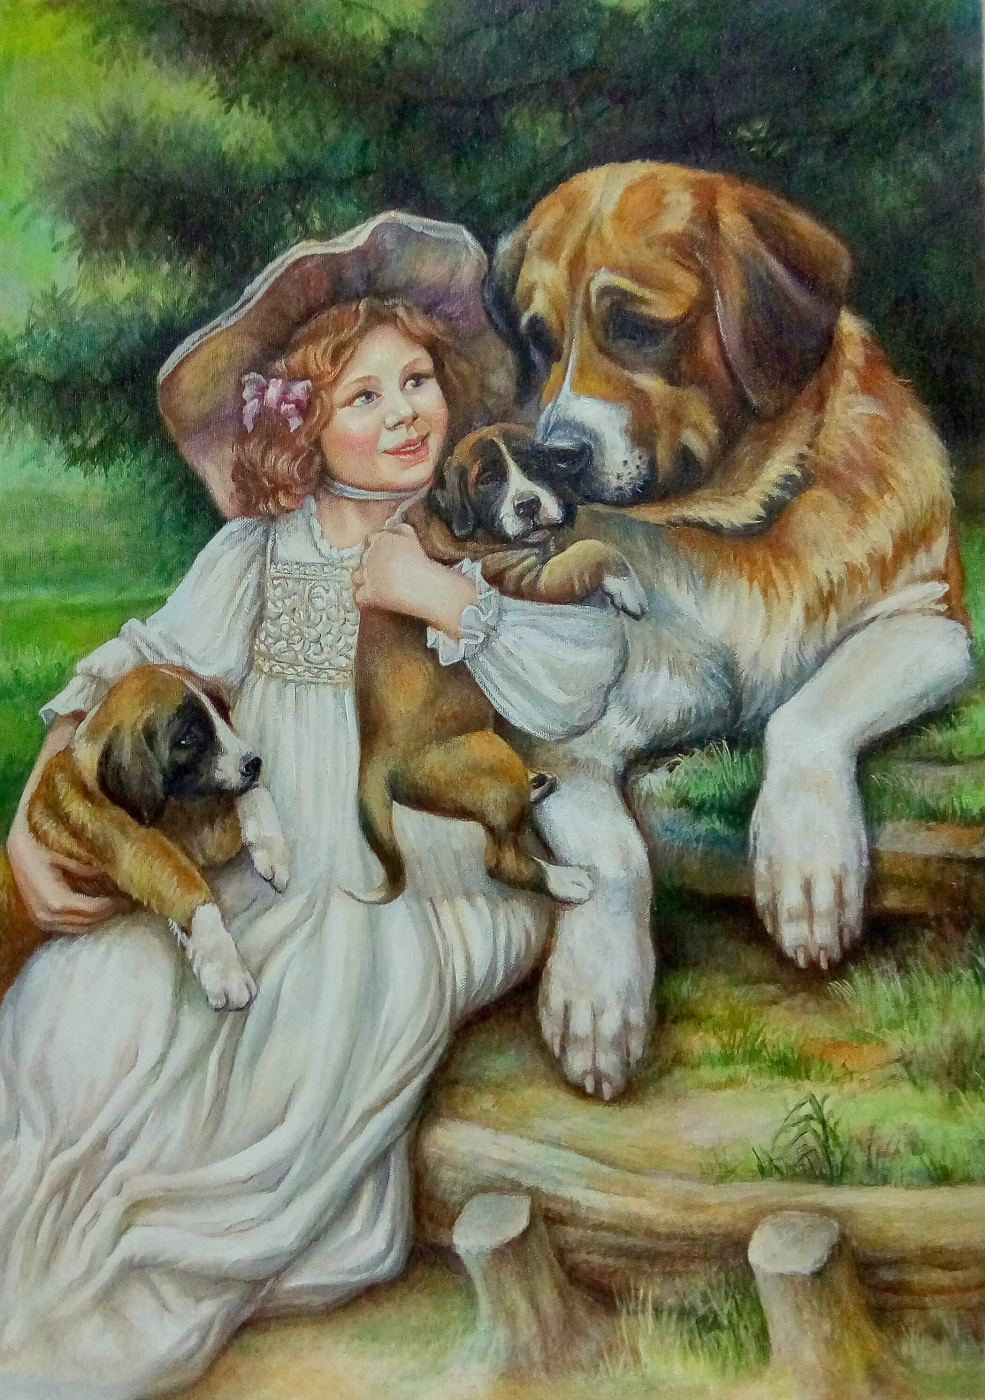 Marina. Copy. The Artist Arthur John Also. Girl with dog and puppies.